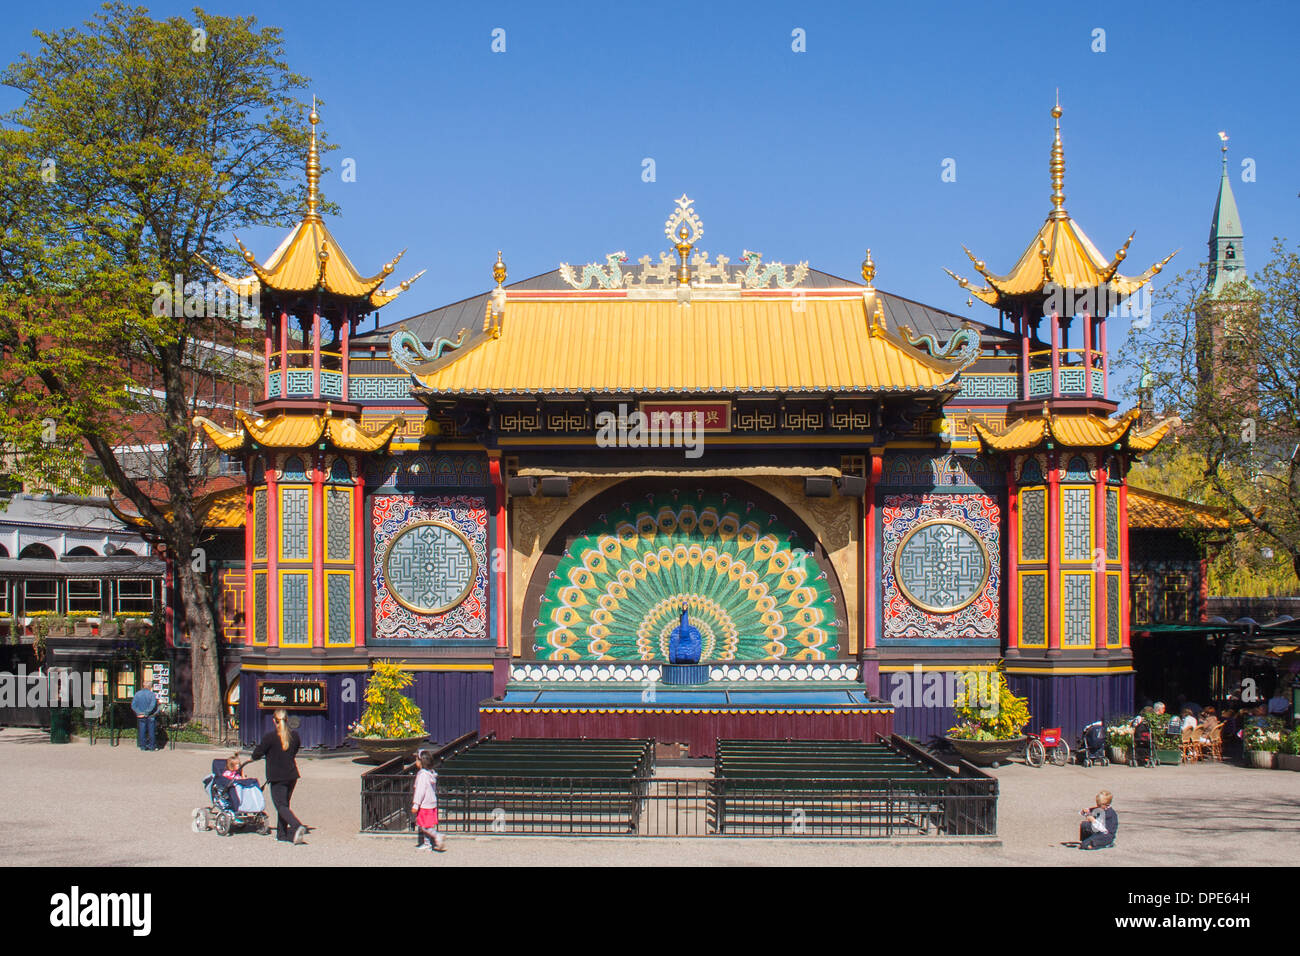 Chinese-style Pantomime Theatre in Tivoli Gardens, Copenhagen Stock Photo - Alamy